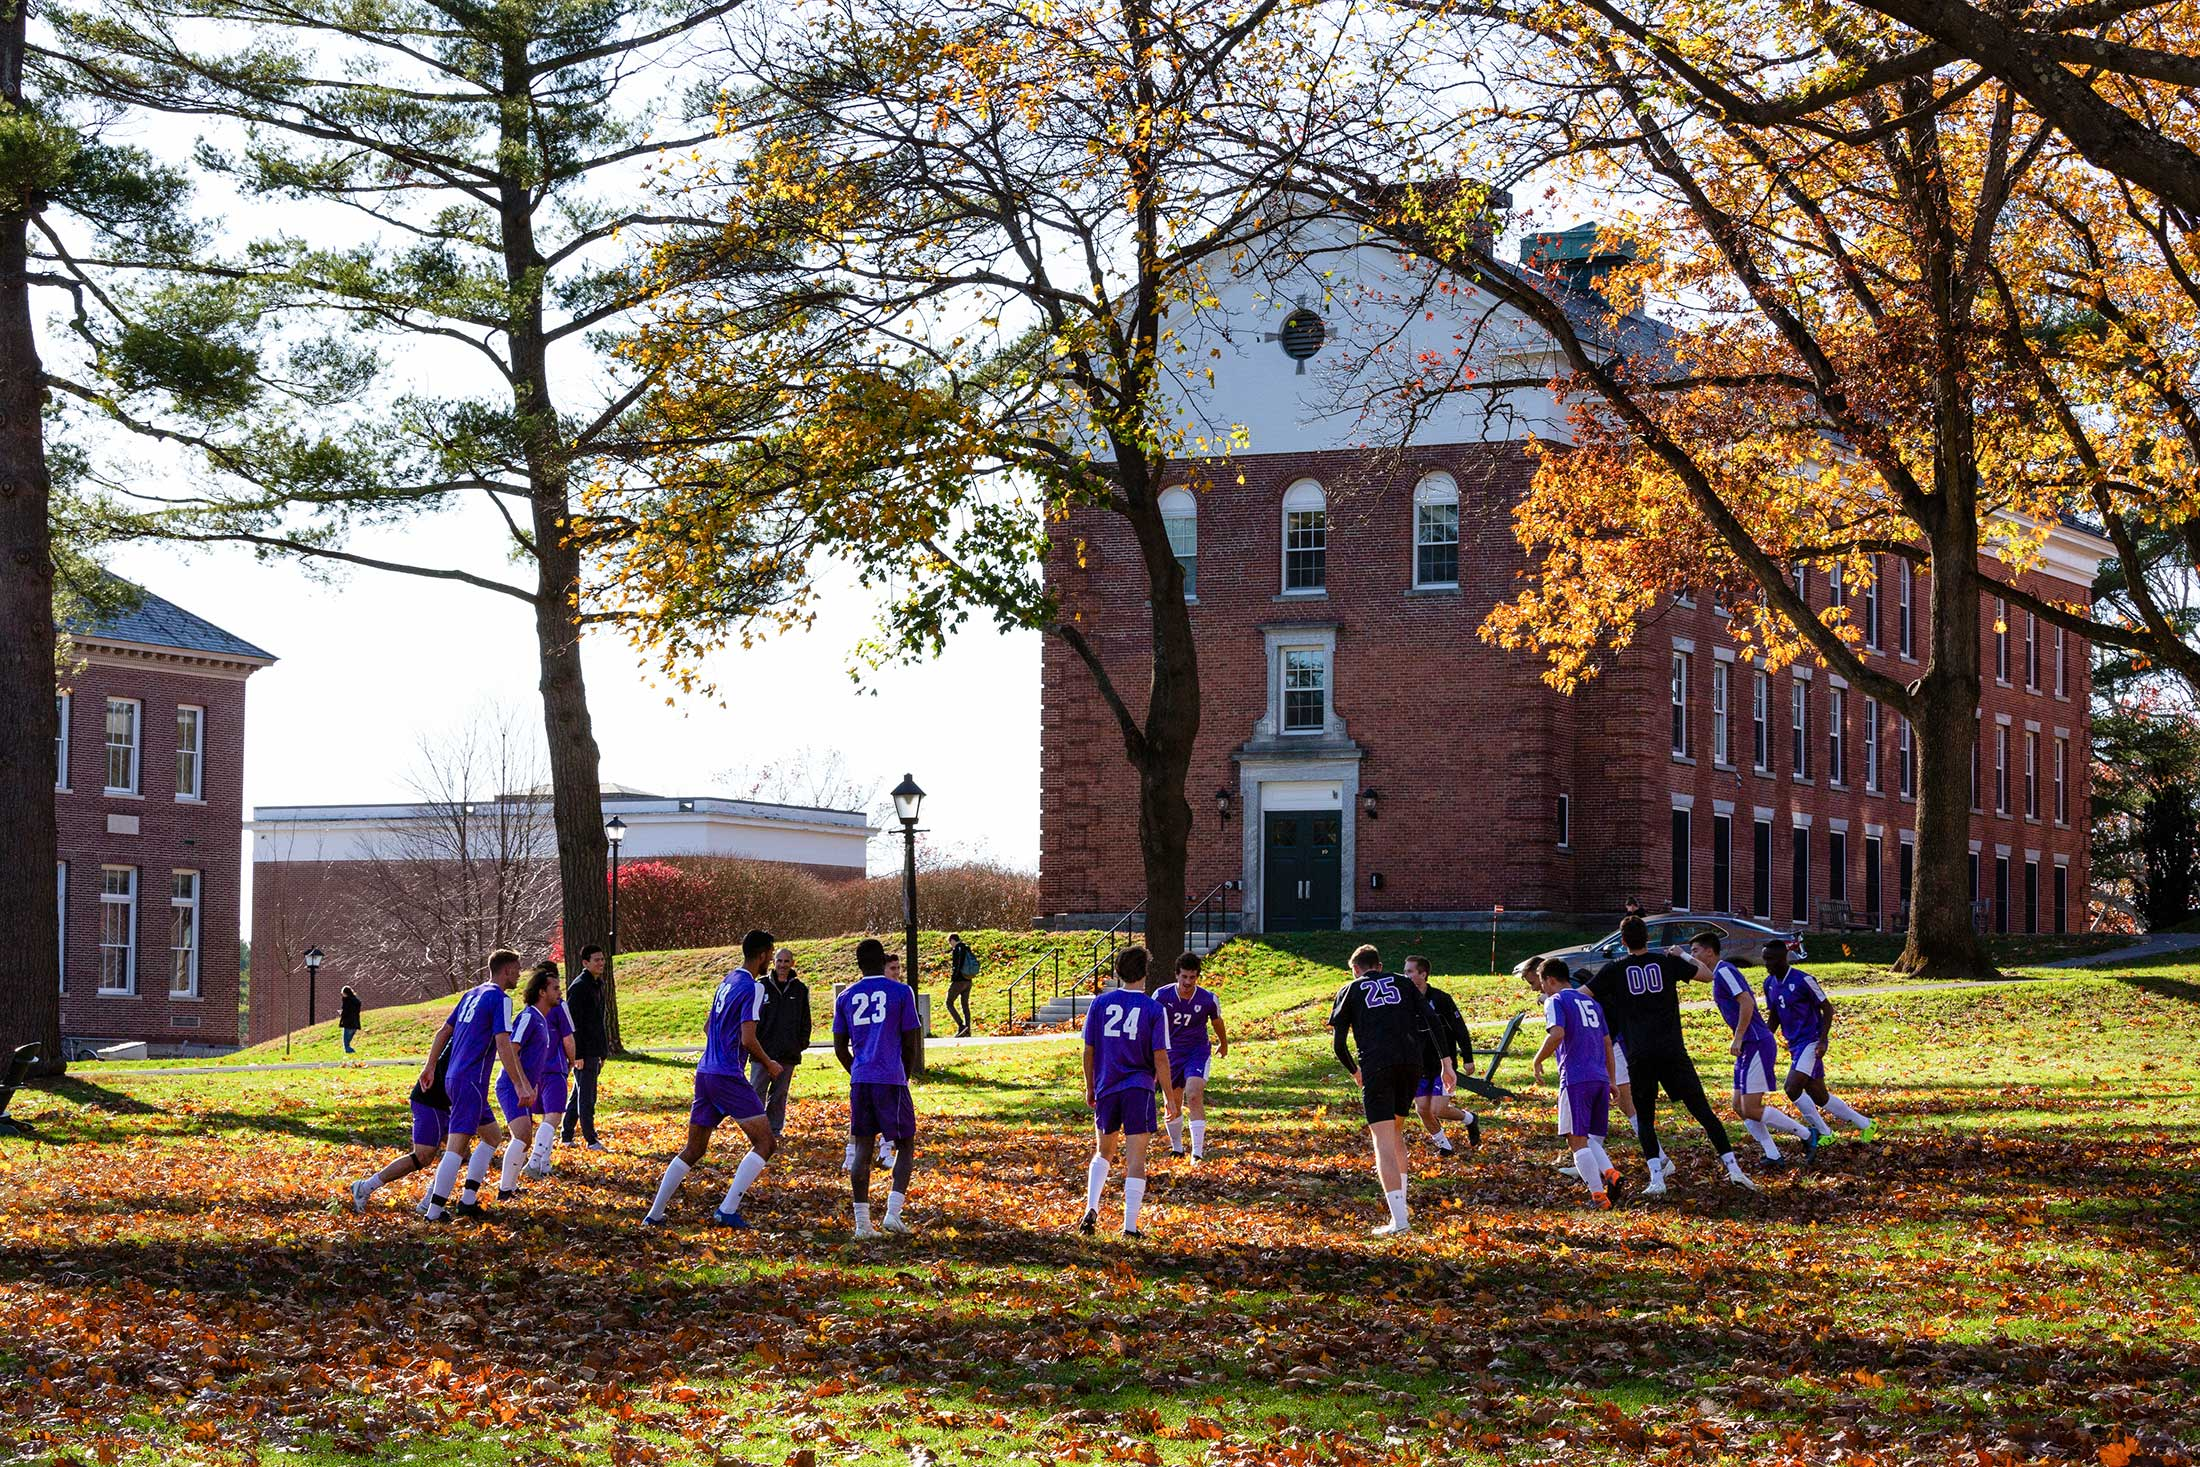 The men's soccer team practicing on the Quad